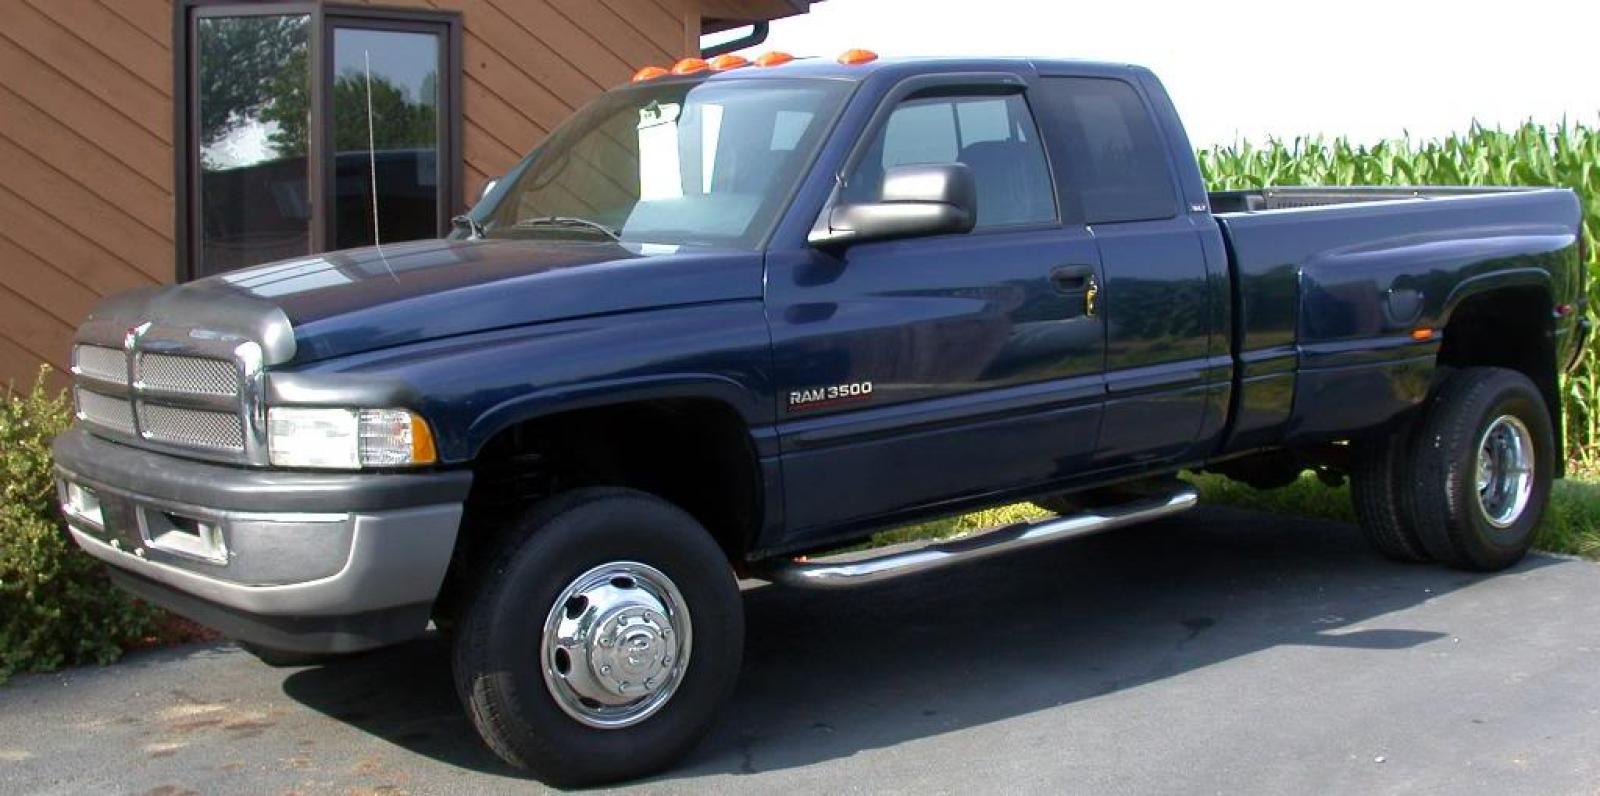 2002 dodge ram pickup 3500 information and photos neo drive neo drive